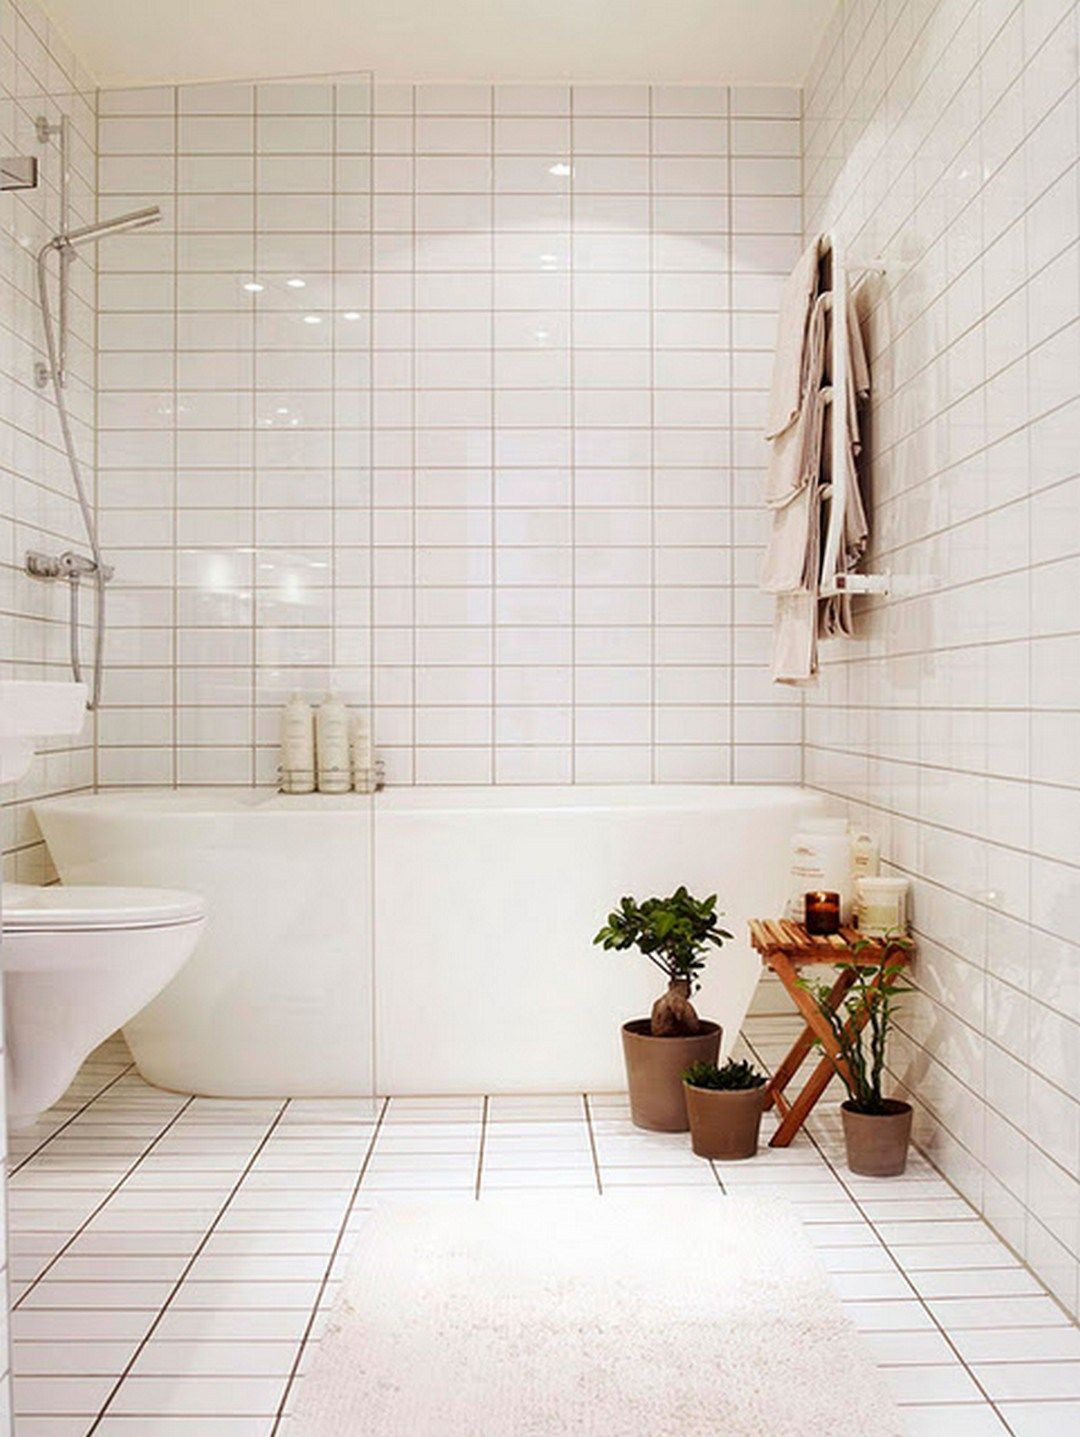 99 Small Bathroom Tub Shower Combo Remodeling Ideas 28 99architecture Bathroom Tub Shower Combo Small Bathroom Makeover Bathroom Tub Shower